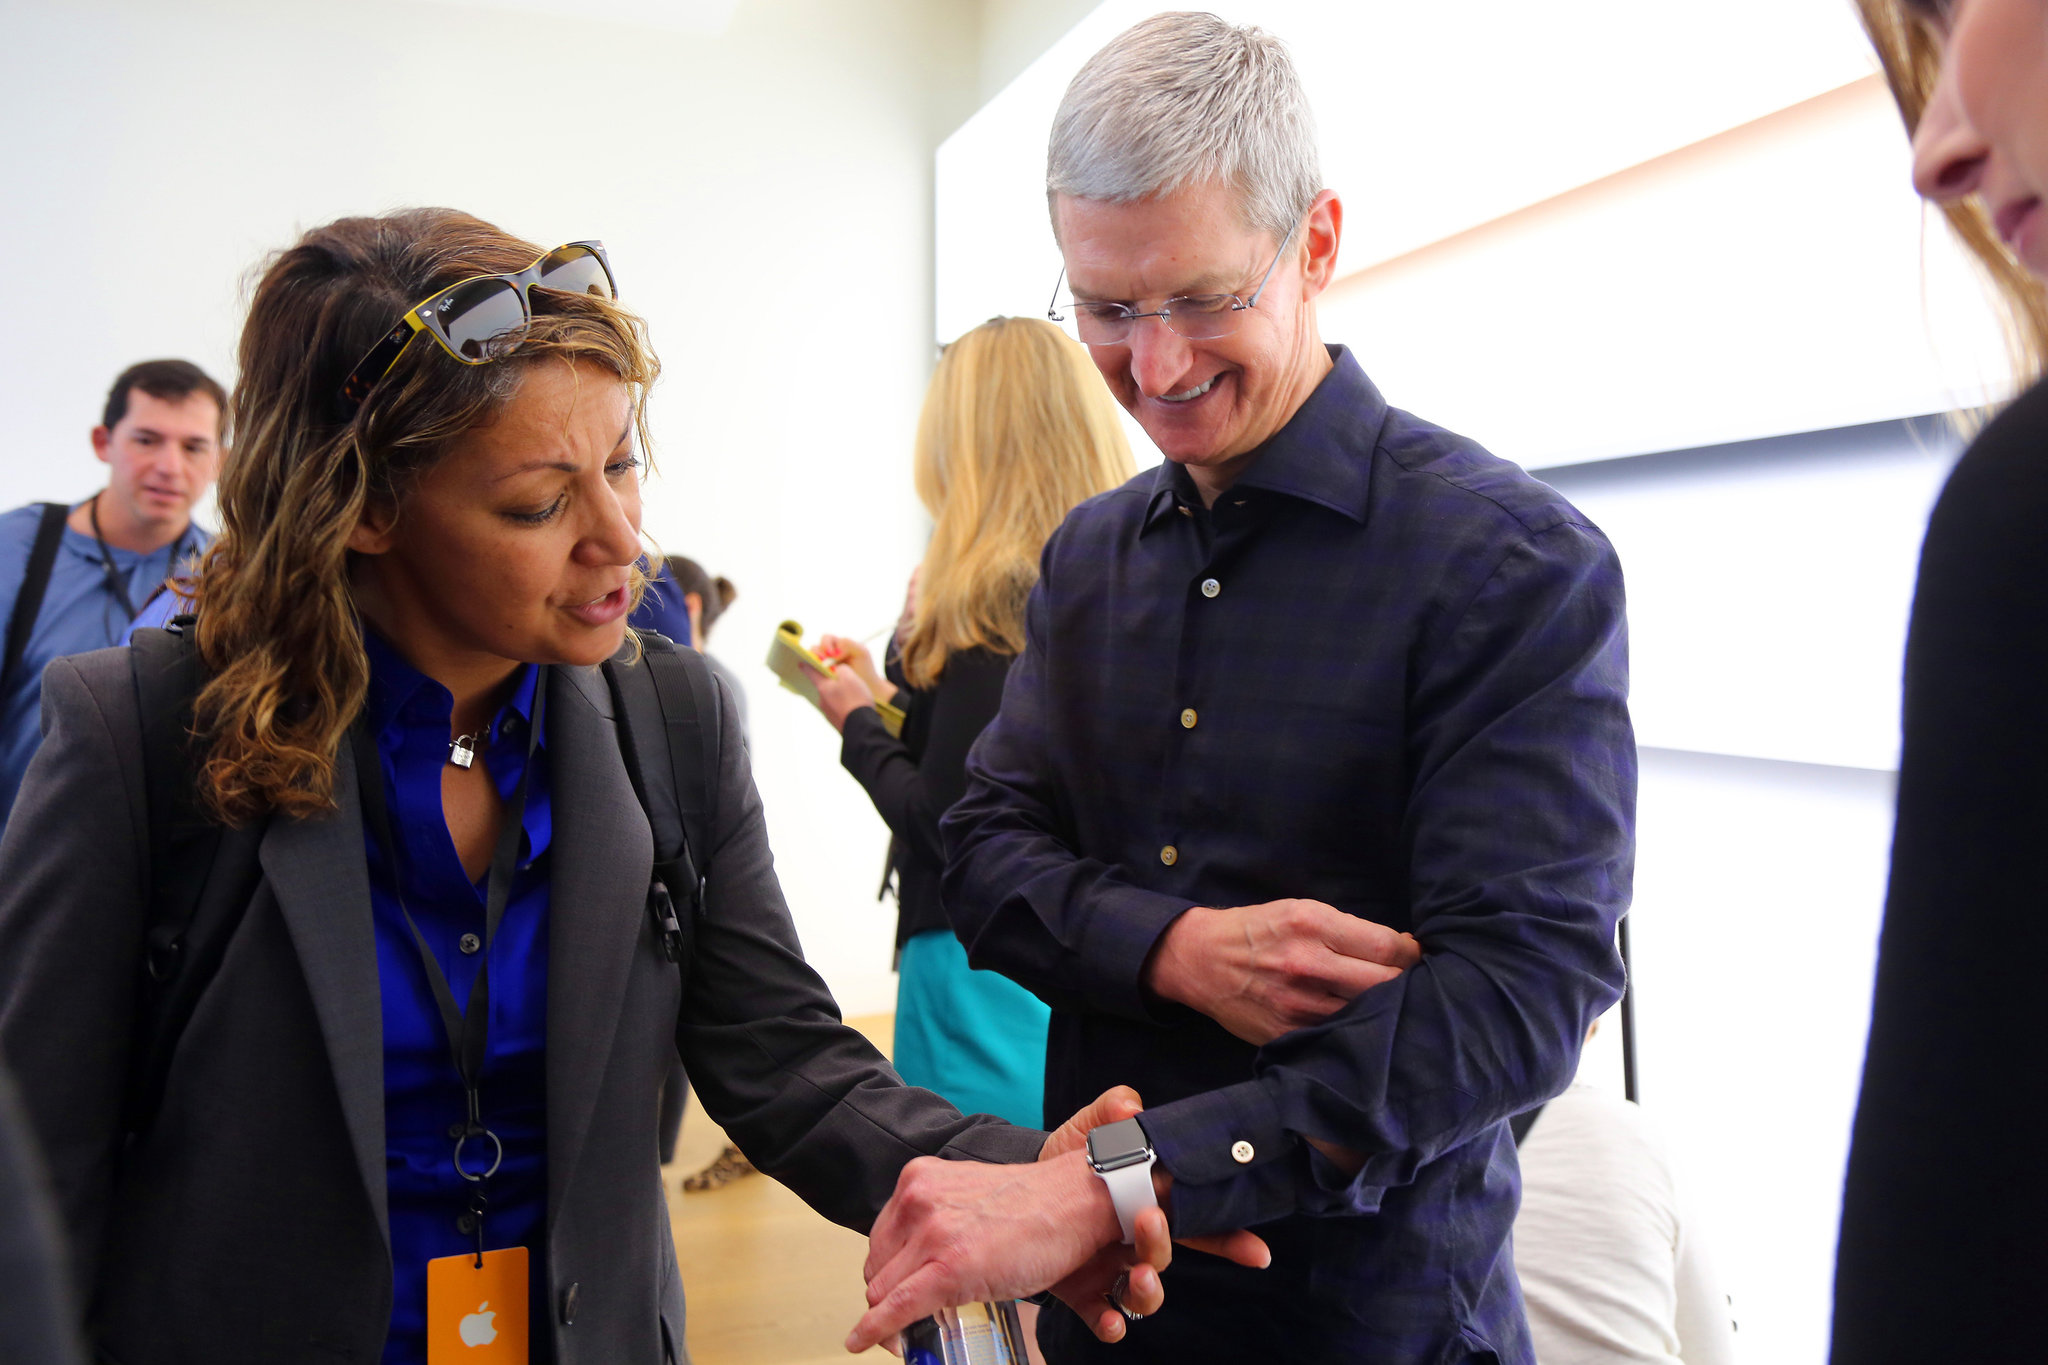 Developers Are Waiting on Apple Watch